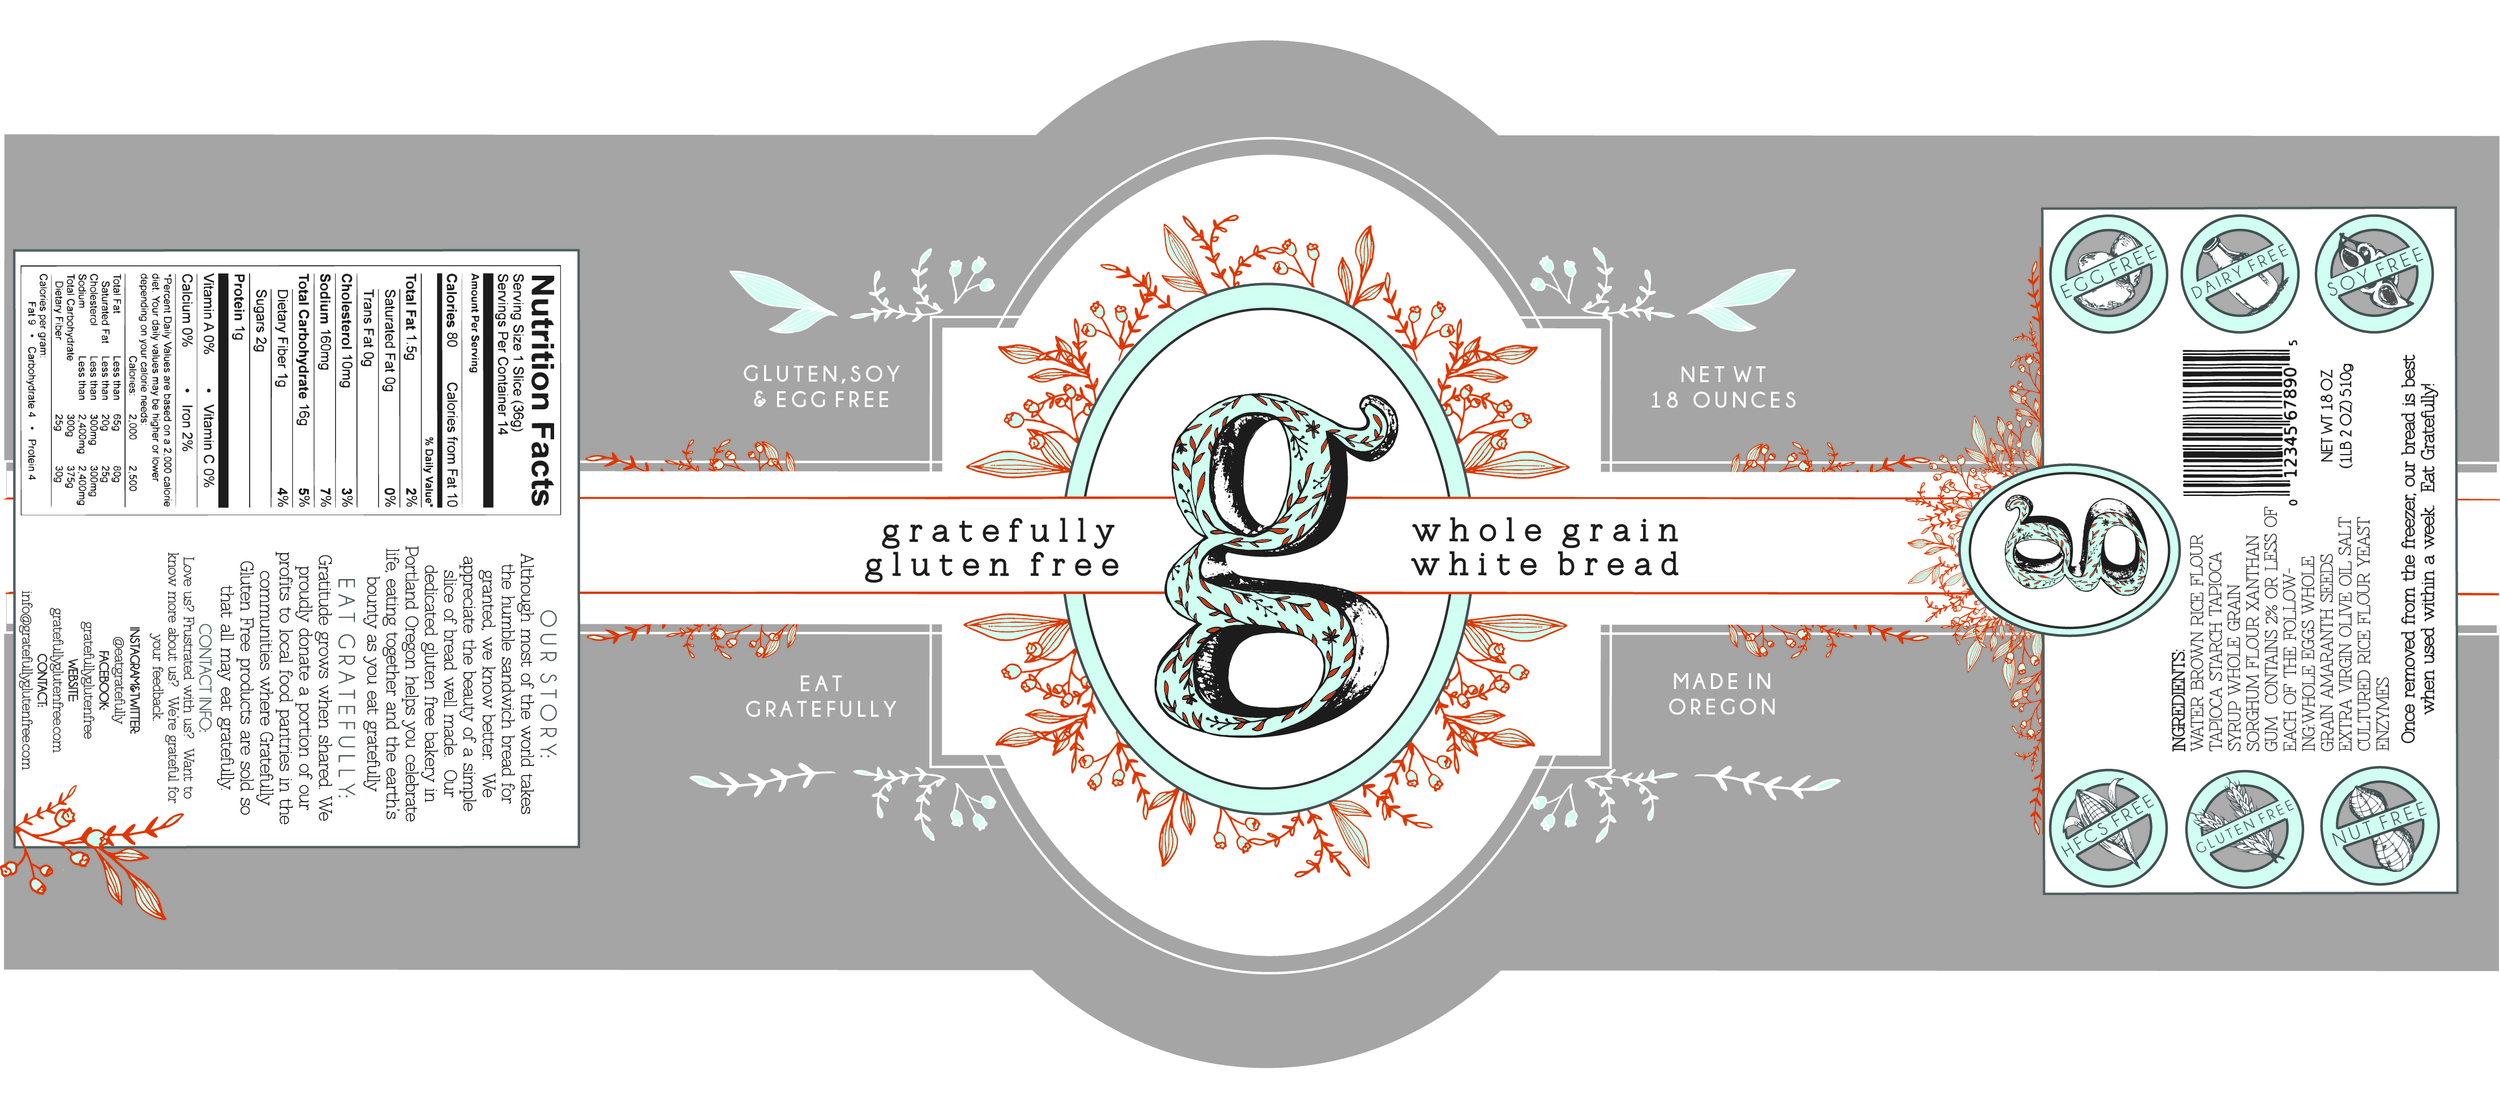 GGF bread label2 .jpg